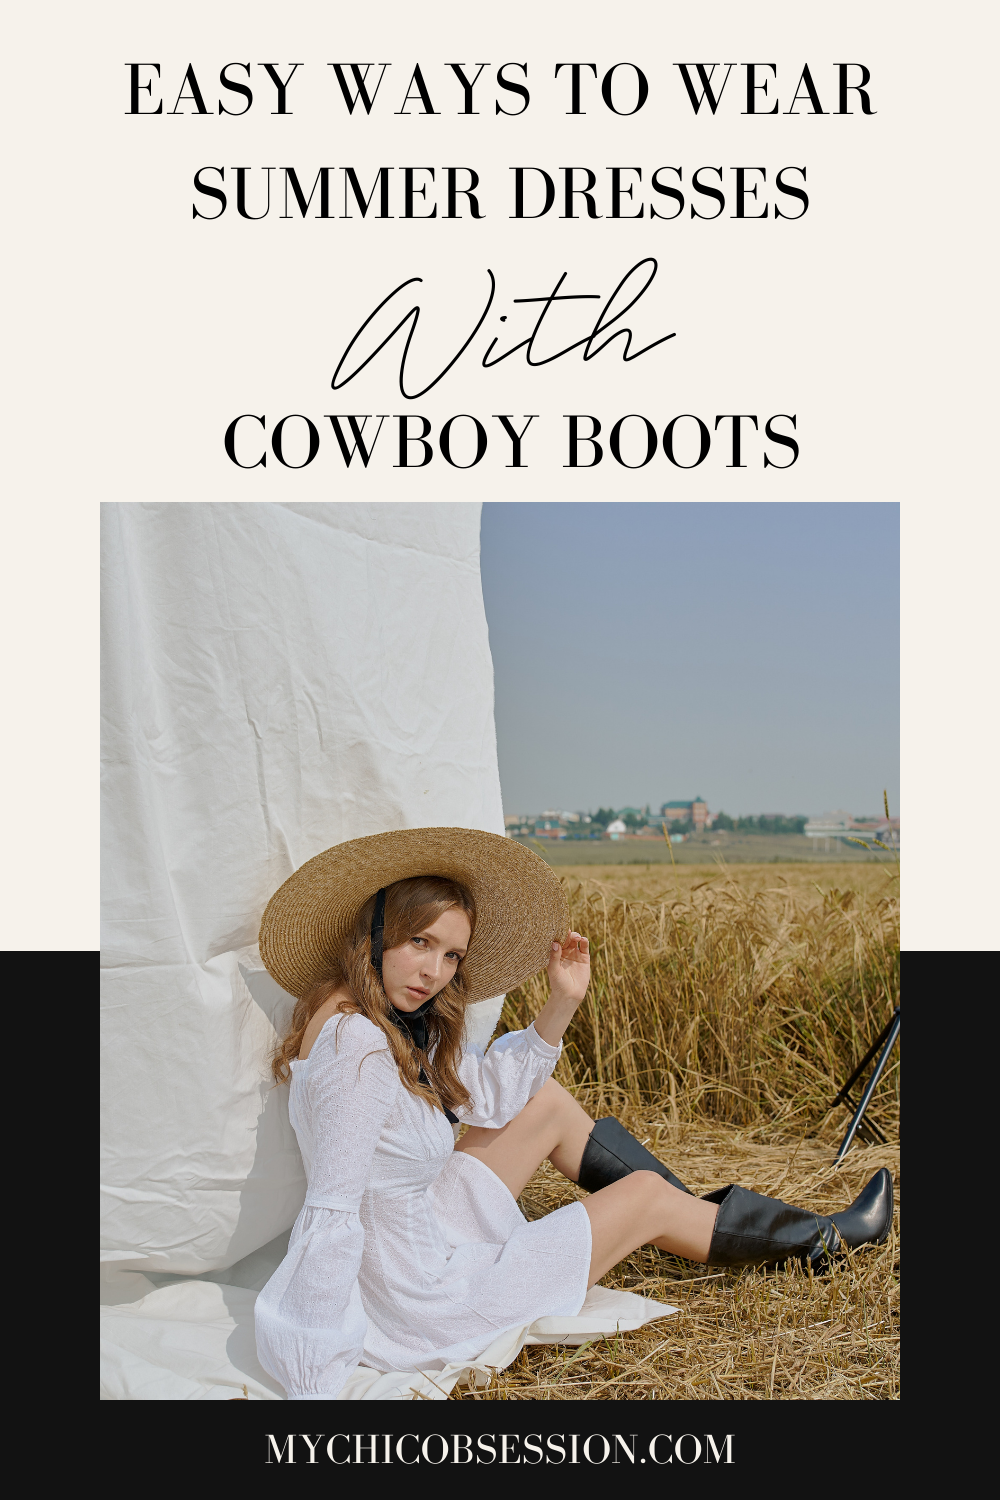 Young white woman sitting in a grass field wearing a white long sleeve dress, thatched wide brim hat and leather cowboy boots